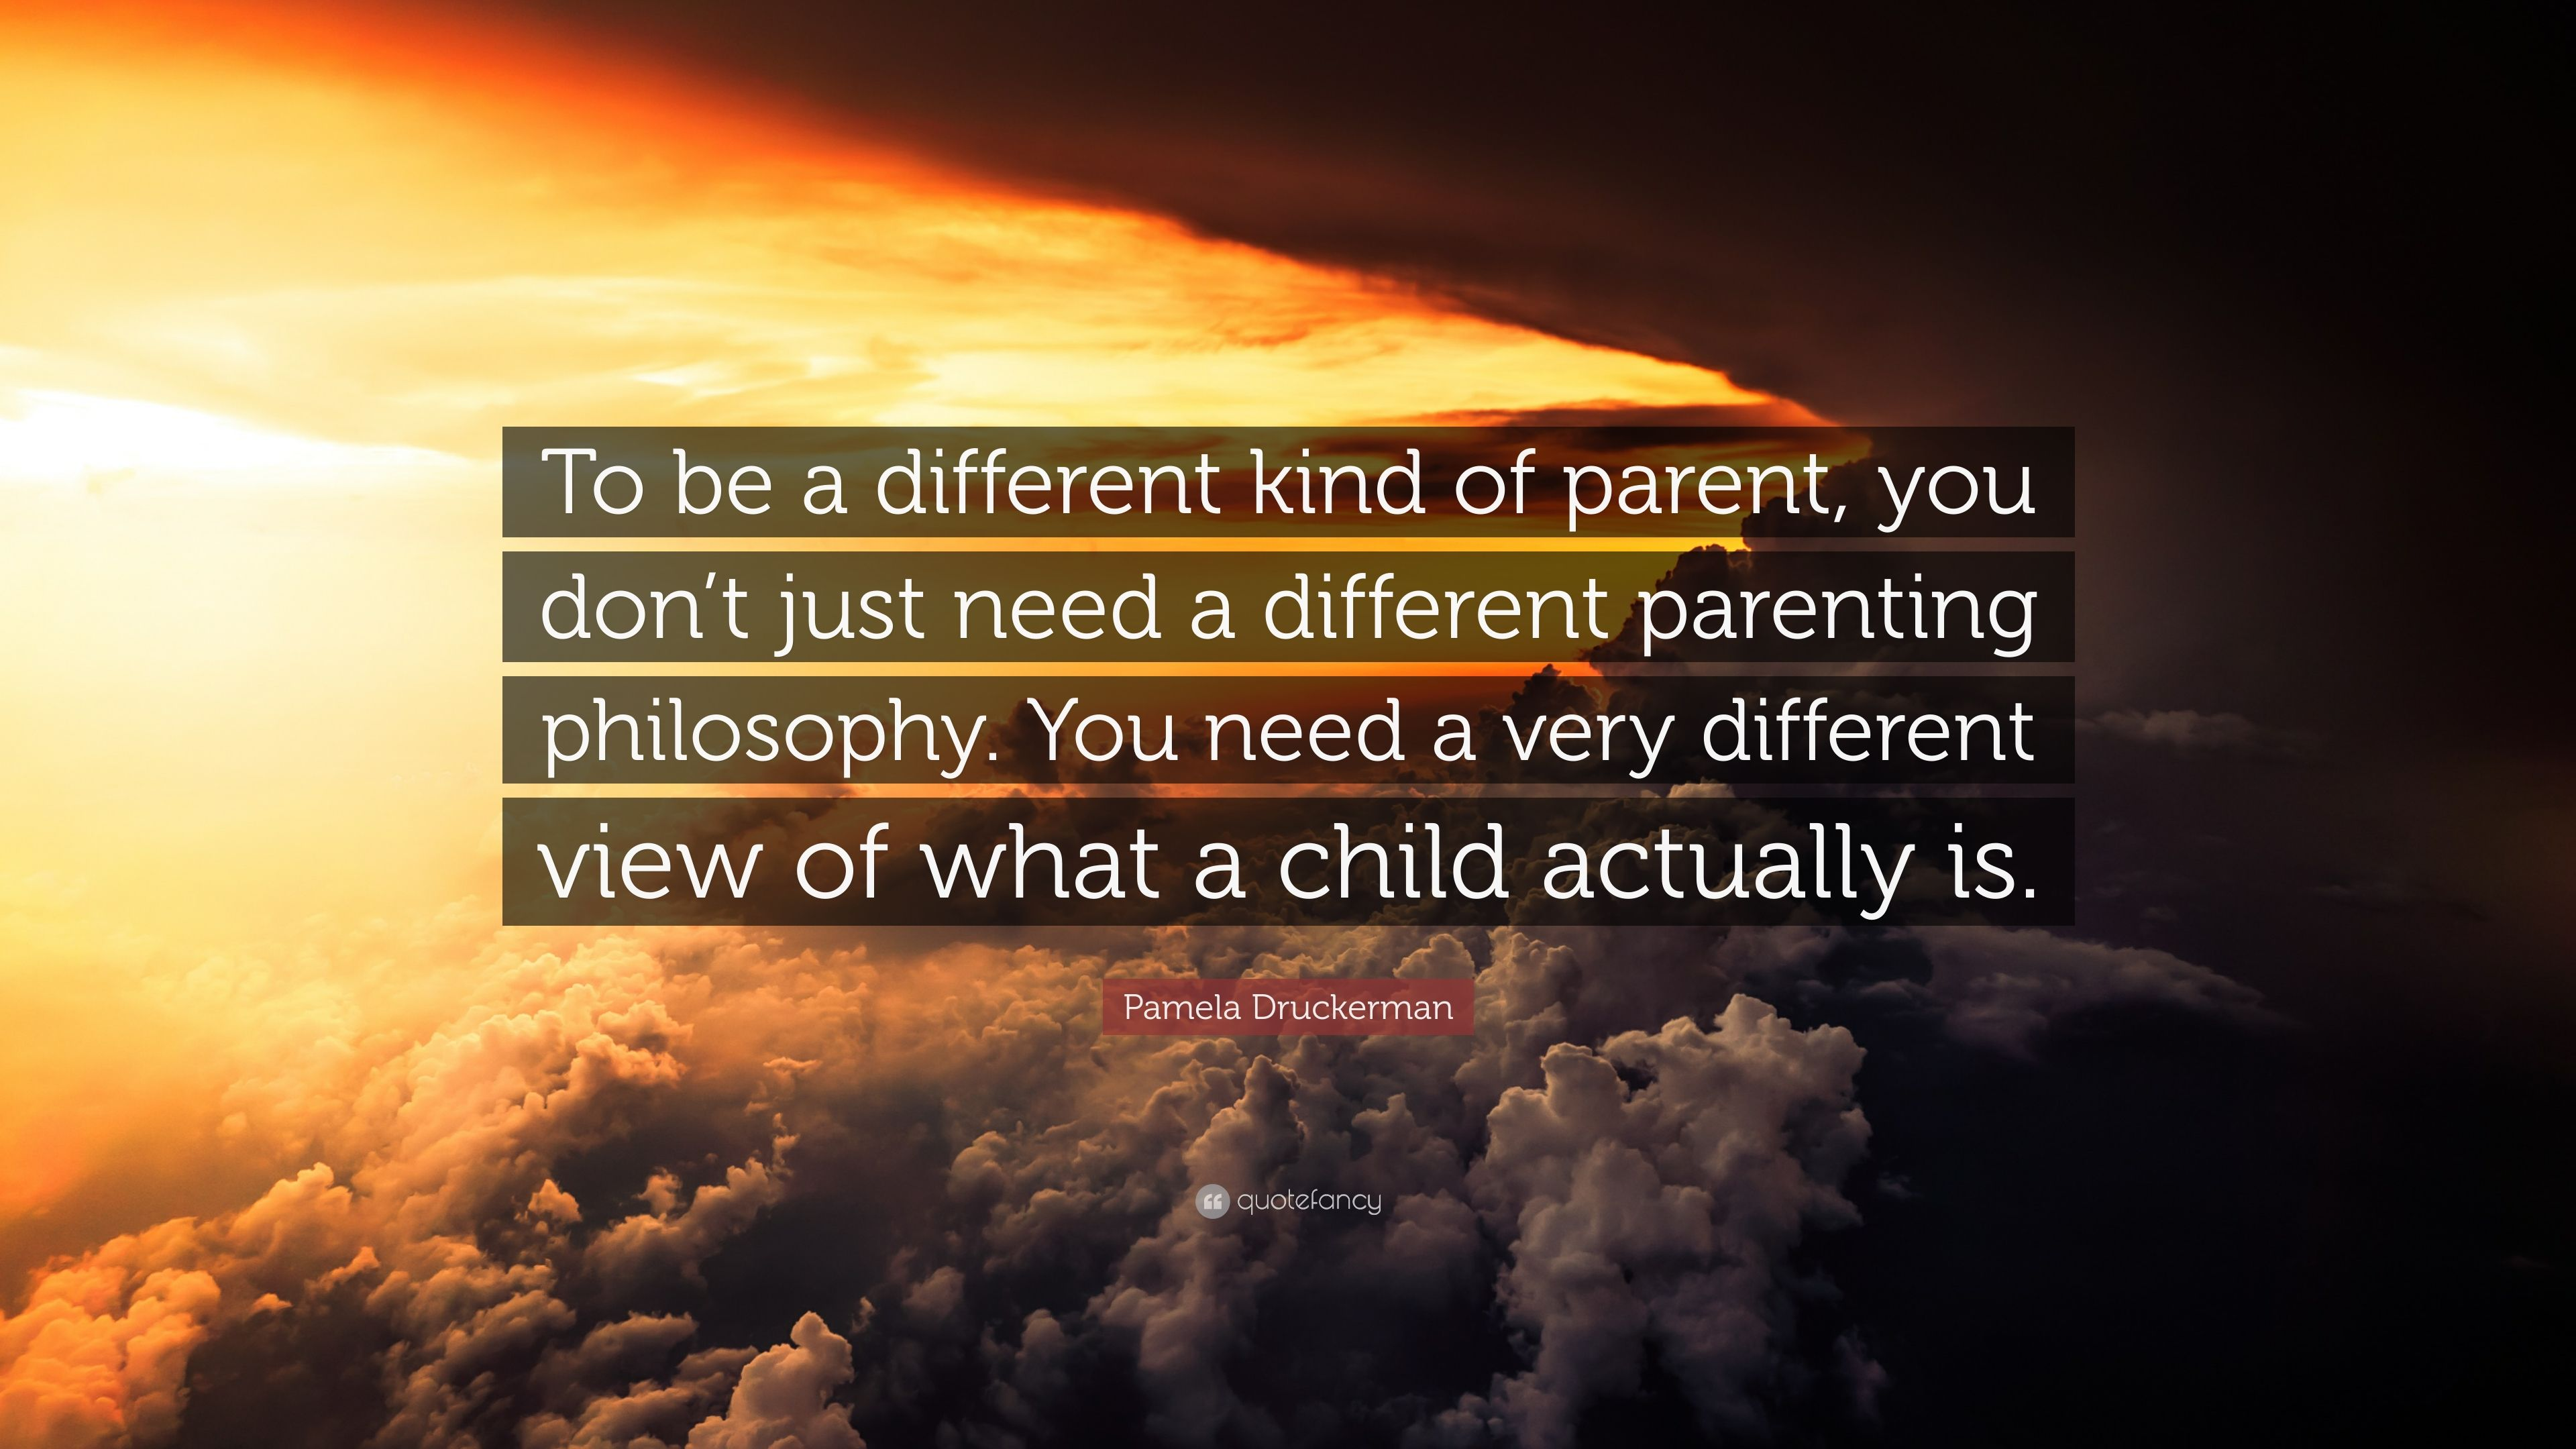 Pamela Druckerman Quote To Be A Different Kind Of Parent You Don T Just Need A Different Parenting Philosophy You Need A Very Different View O 7 Wallpapers Quotefancy